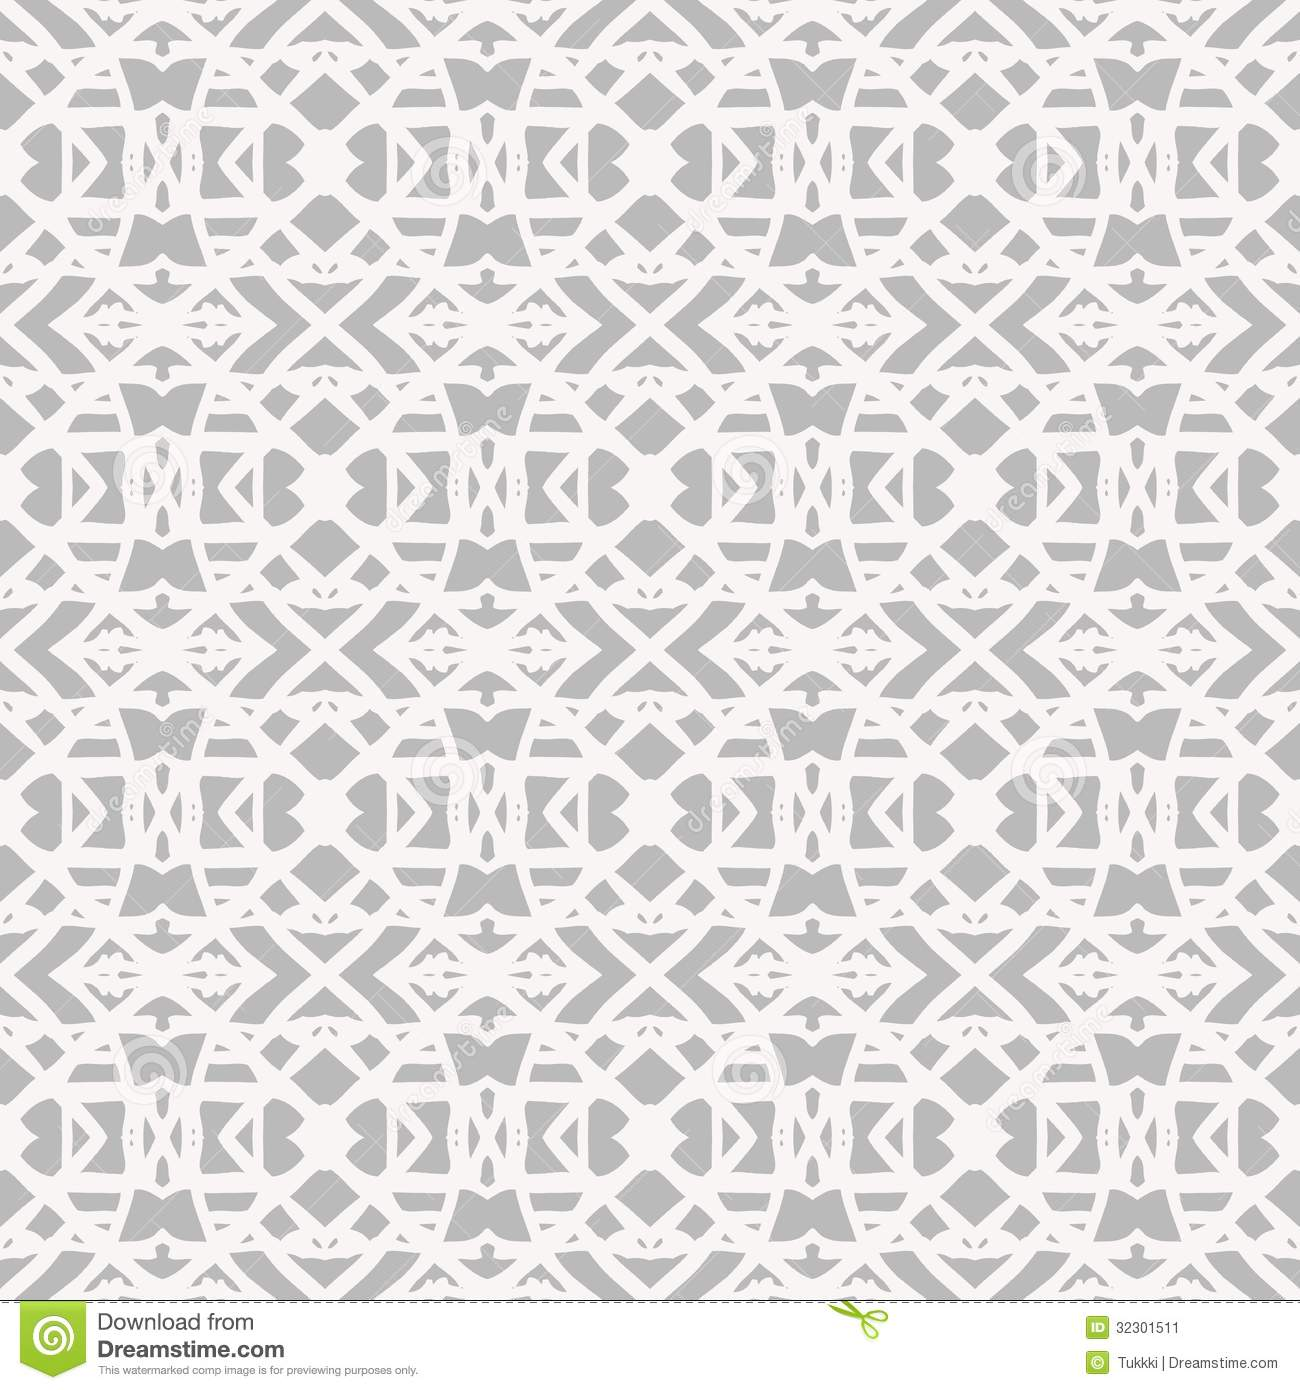 Stock Image Elegant Pattern Zigzag Lines Silver Grey Texture Hipster Style Web Print Winter Fashion Christmas Decor Wrapping Paper Image32654351 likewise Stock Photos Paisley Invitation Card Background Image28935123 in addition Stock Image Lace Pattern White Shapes Art Deco Style Simple Elegant Grey Silver Background Texture Web Print Holiday Home Decor Image32301511 furthermore Royalty Free Stock Photography Heart Border Image17150567 in addition  on silver wedding invitation cards